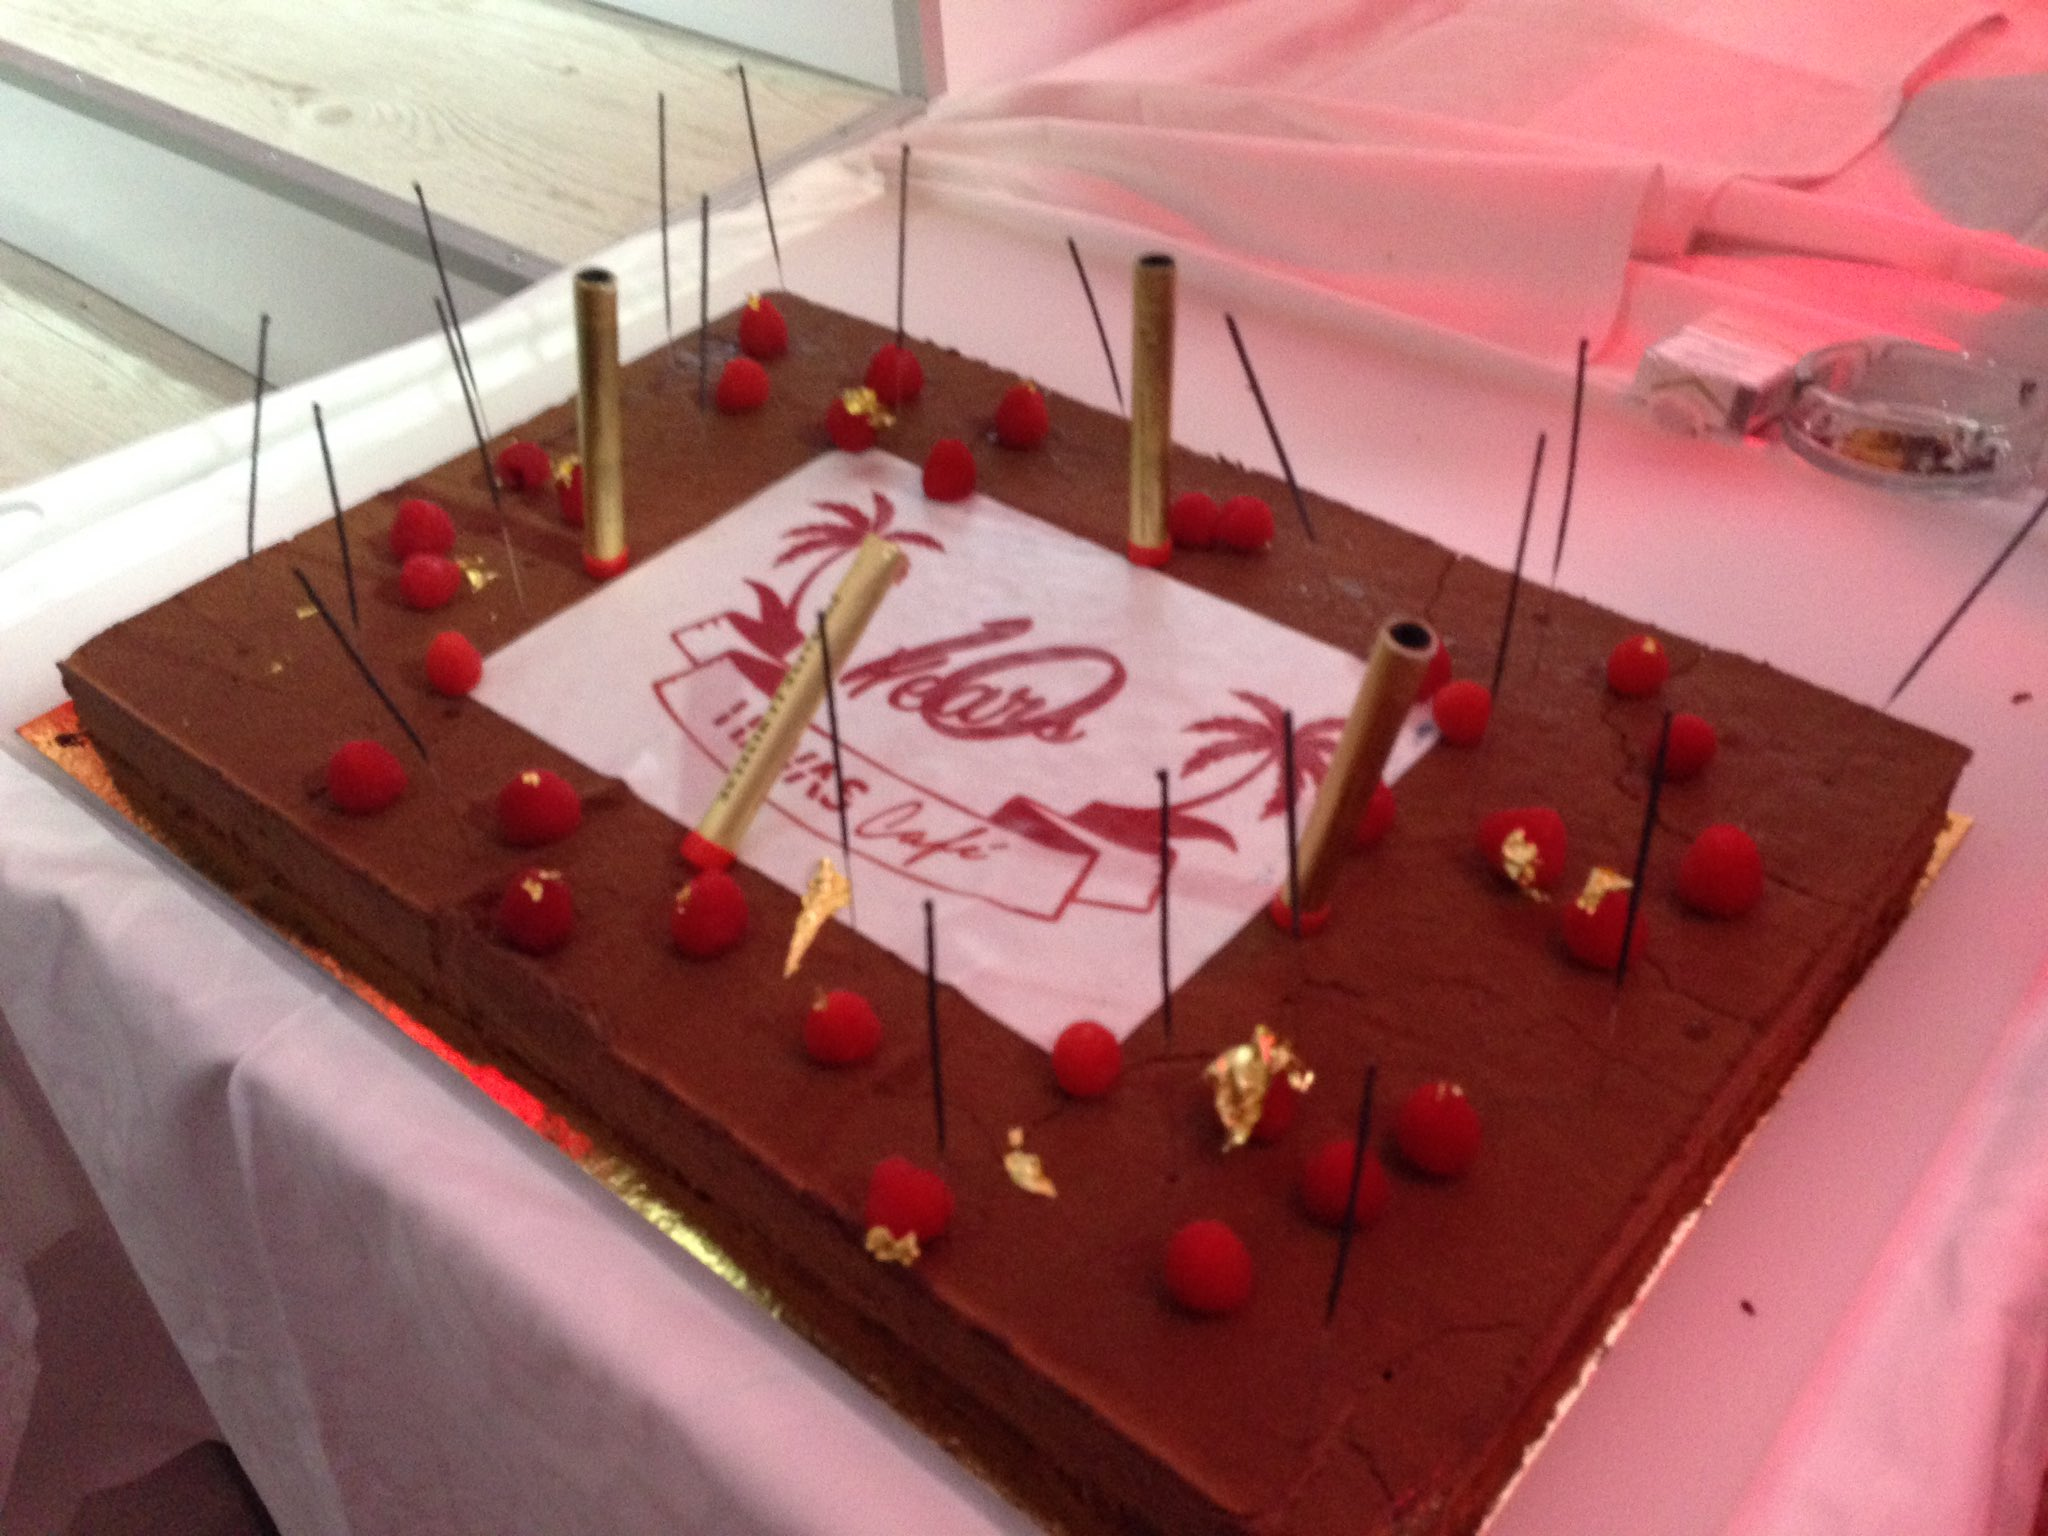 Happy birthday, #HavasCafe ;) https://t.co/k06yuQ7RAH